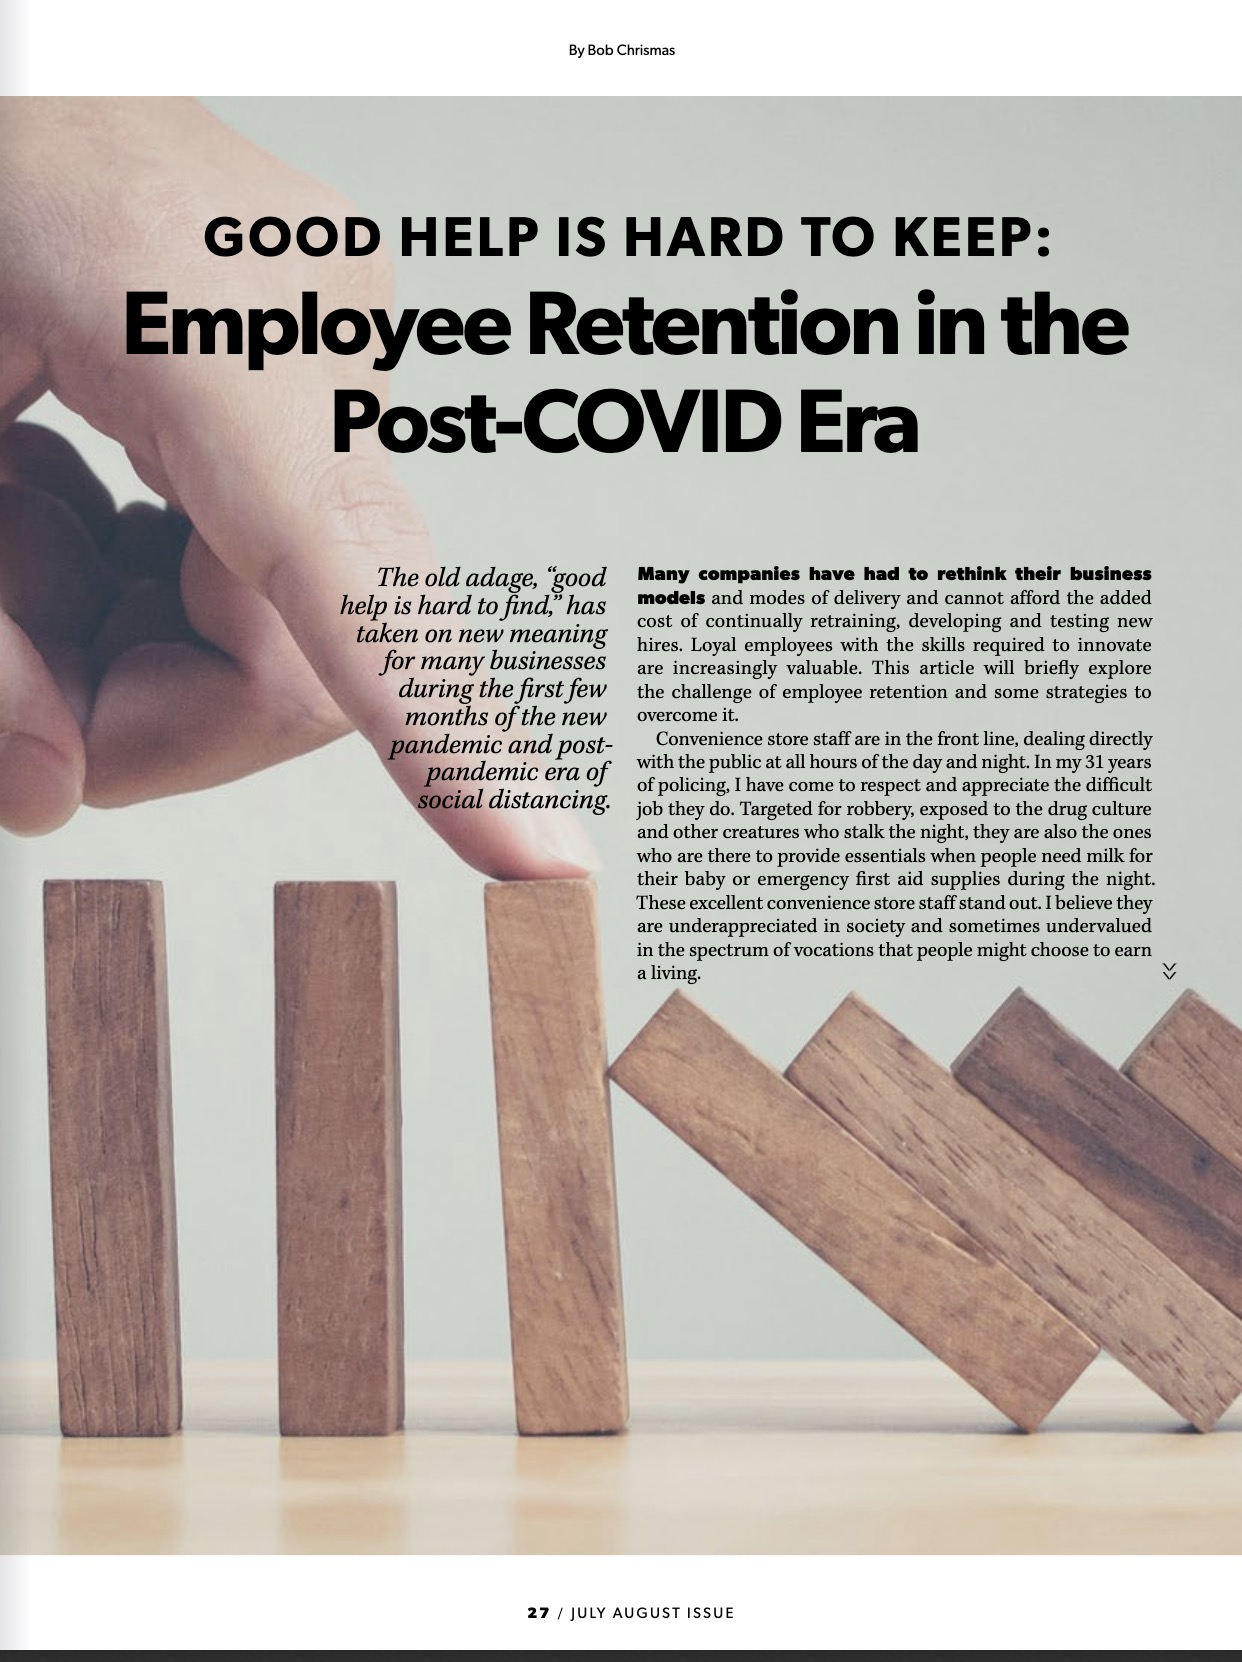 2020-07-26 pg 2 Convenience & Carwash Canada Employee Retention copy